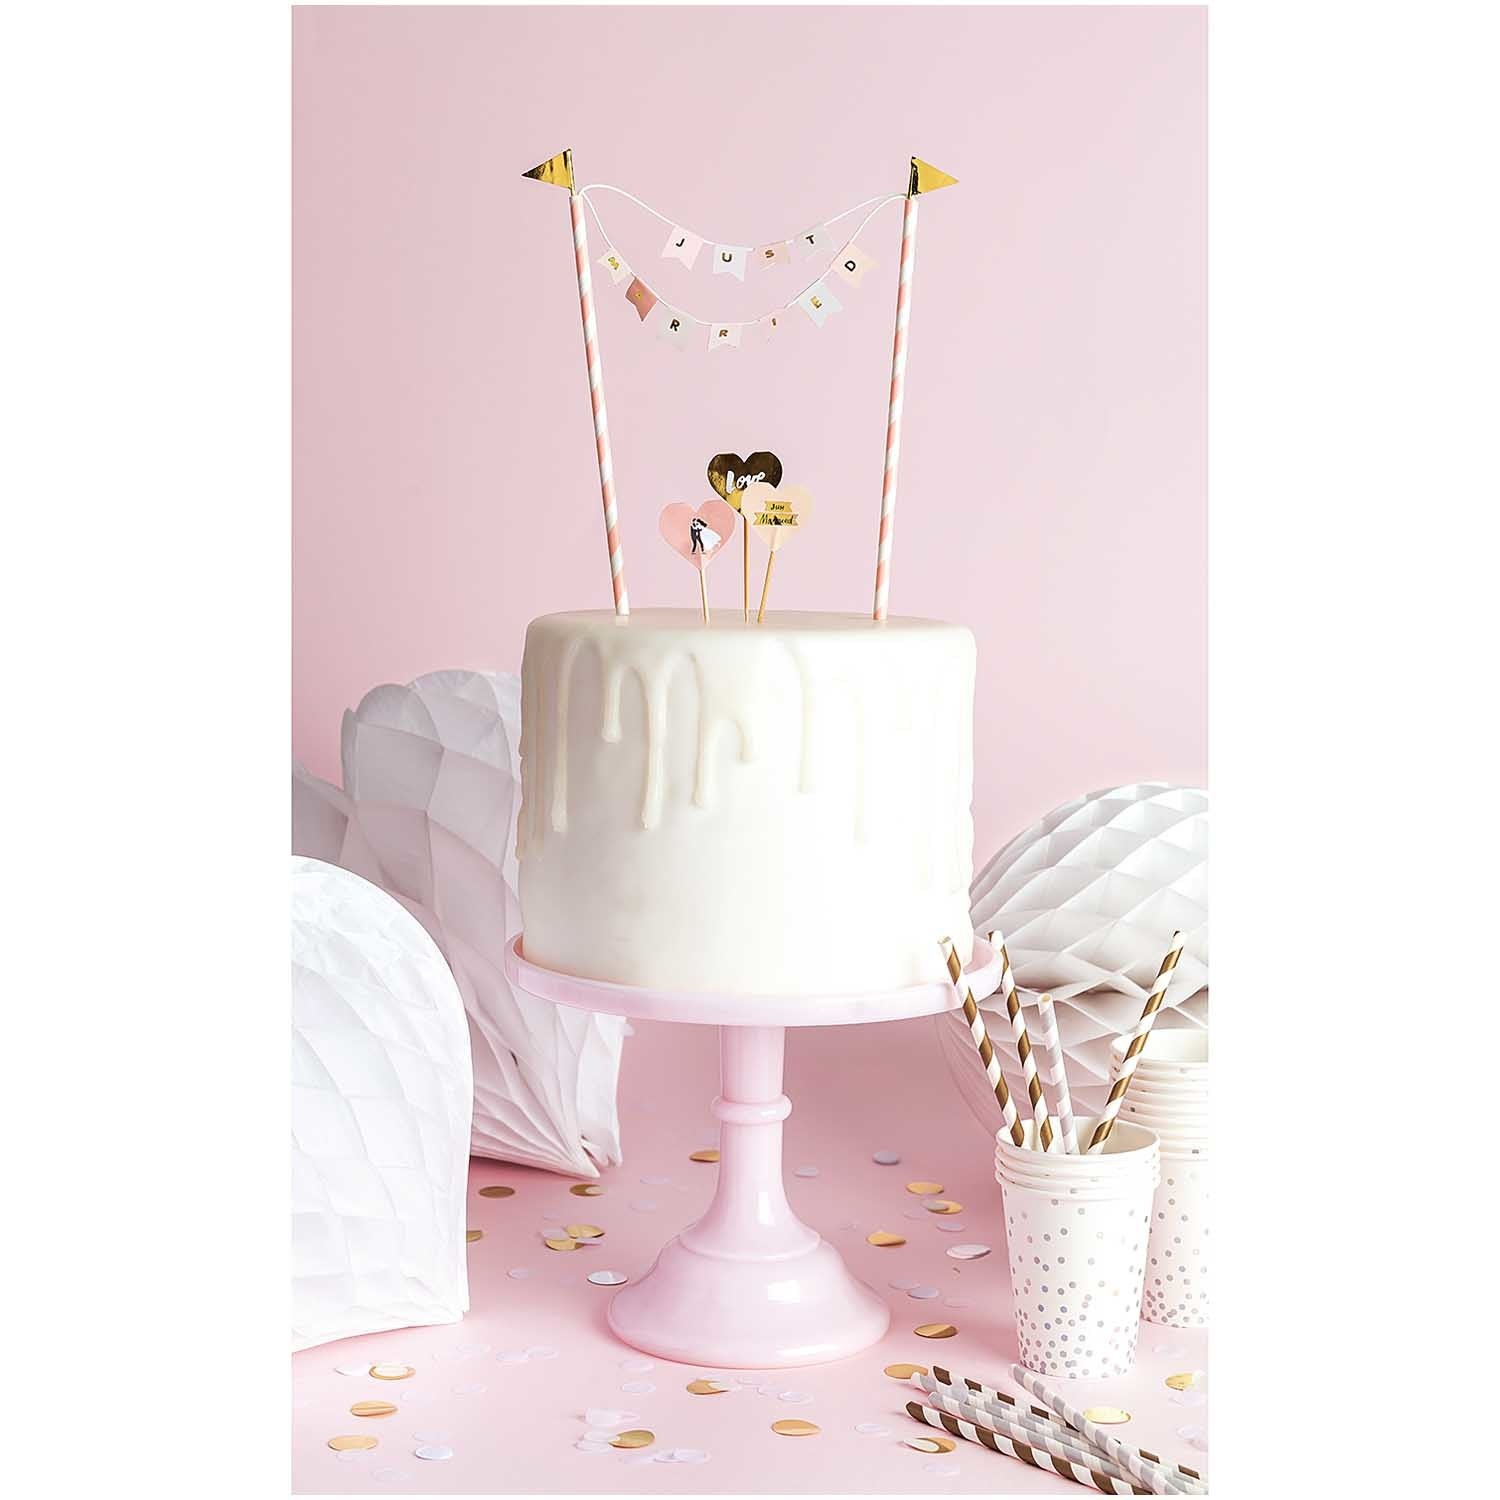 RICO CAKE DECORATION, JUST MARRIED